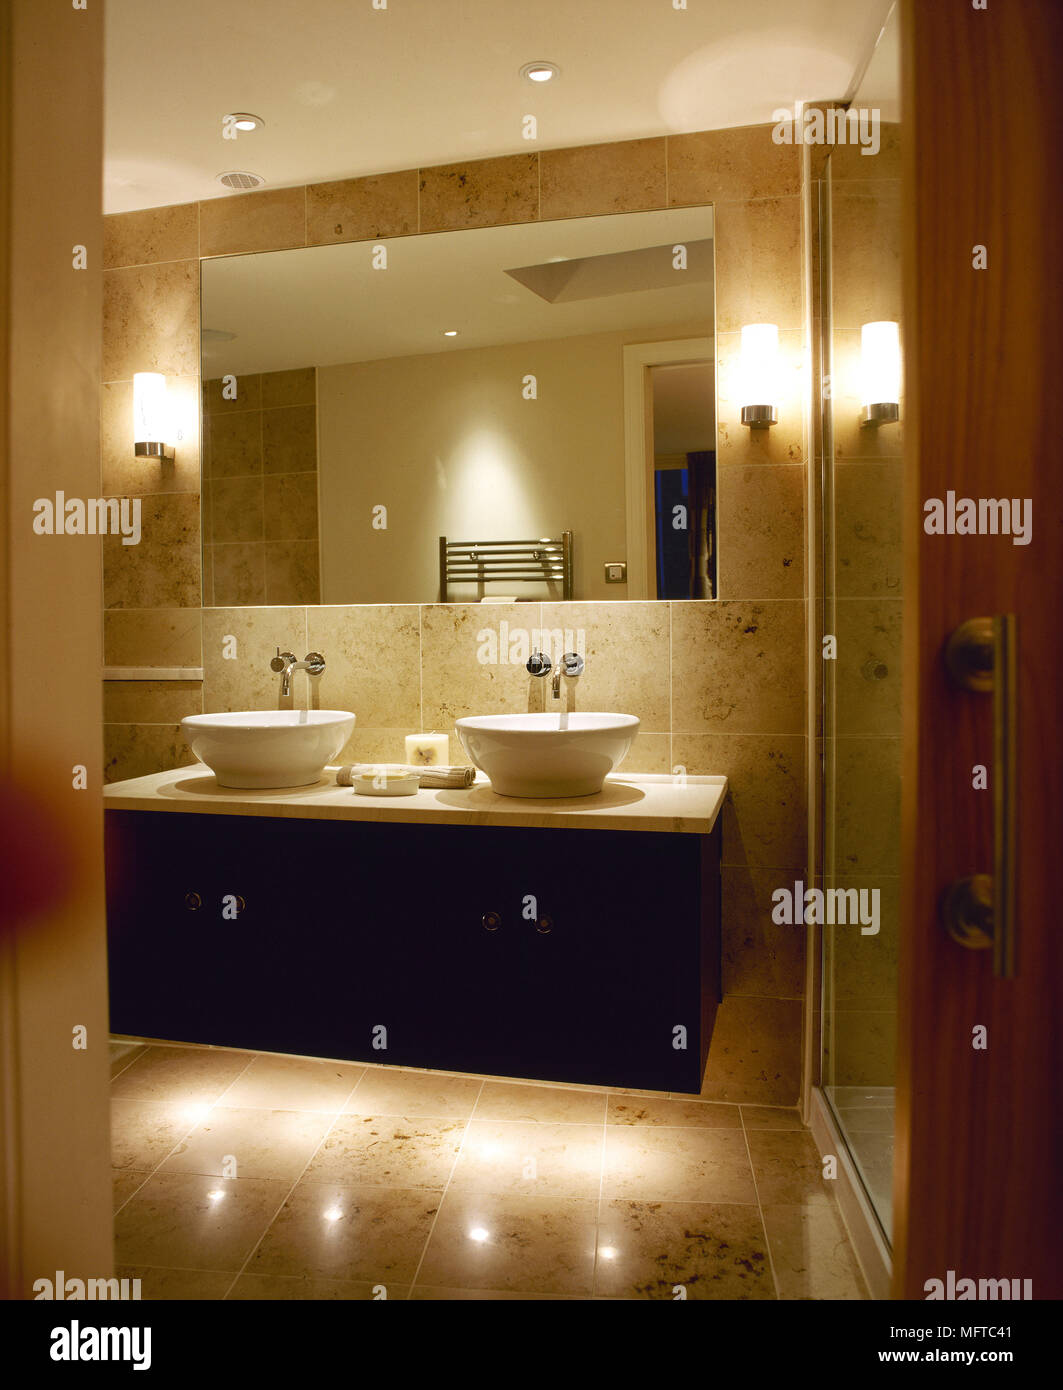 Modern, tiled bathroom with double sinks, large mirror, and lit wall ...